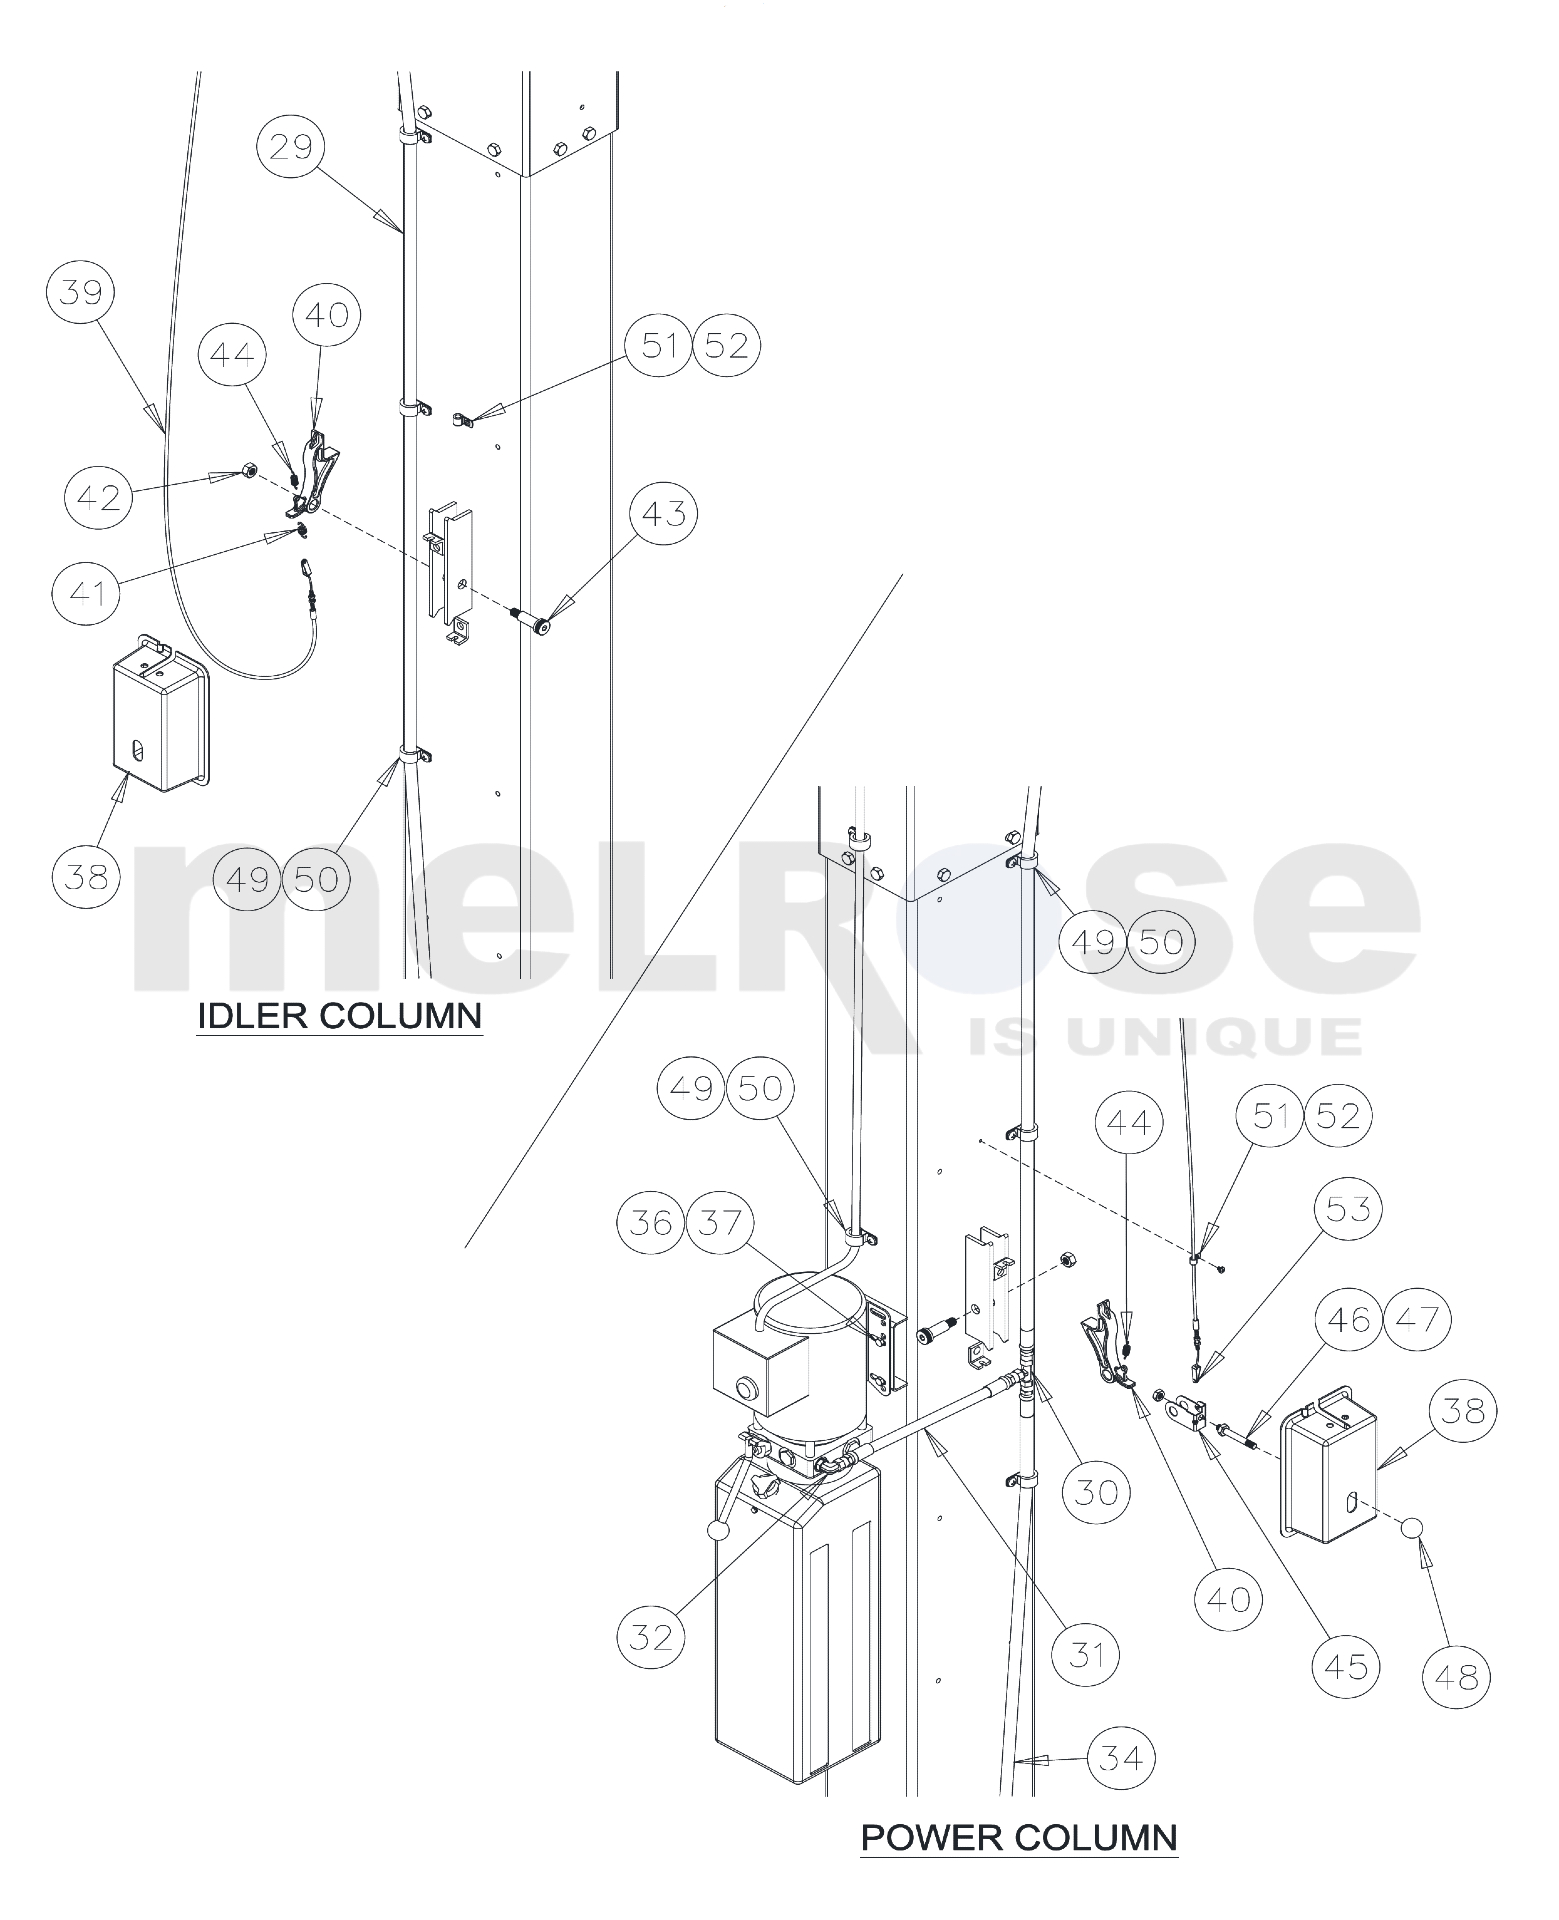 le10-idler-and-power-columns-diagram-marked.jpg